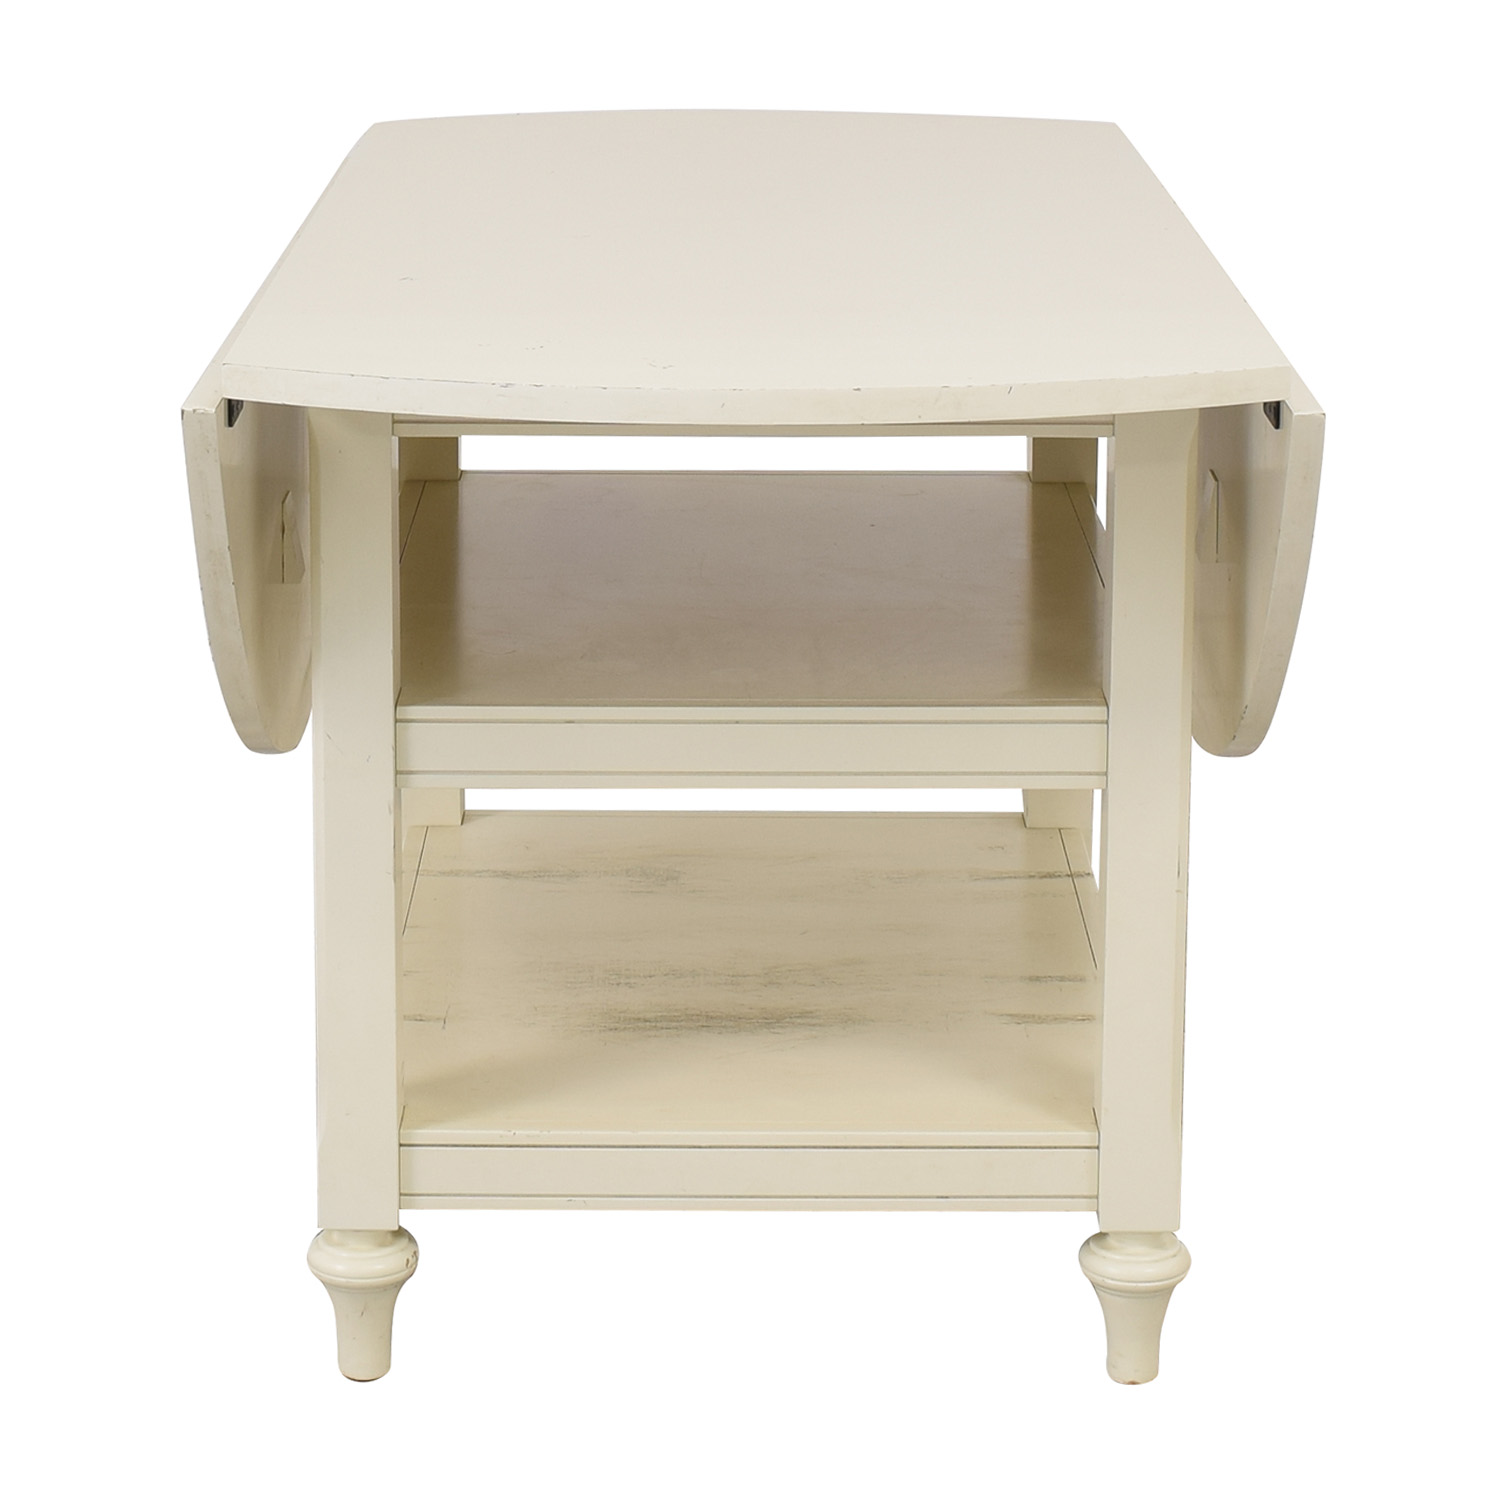 Pottery Barn Pottery Barn Shayne Drop-Leaf Table for sale